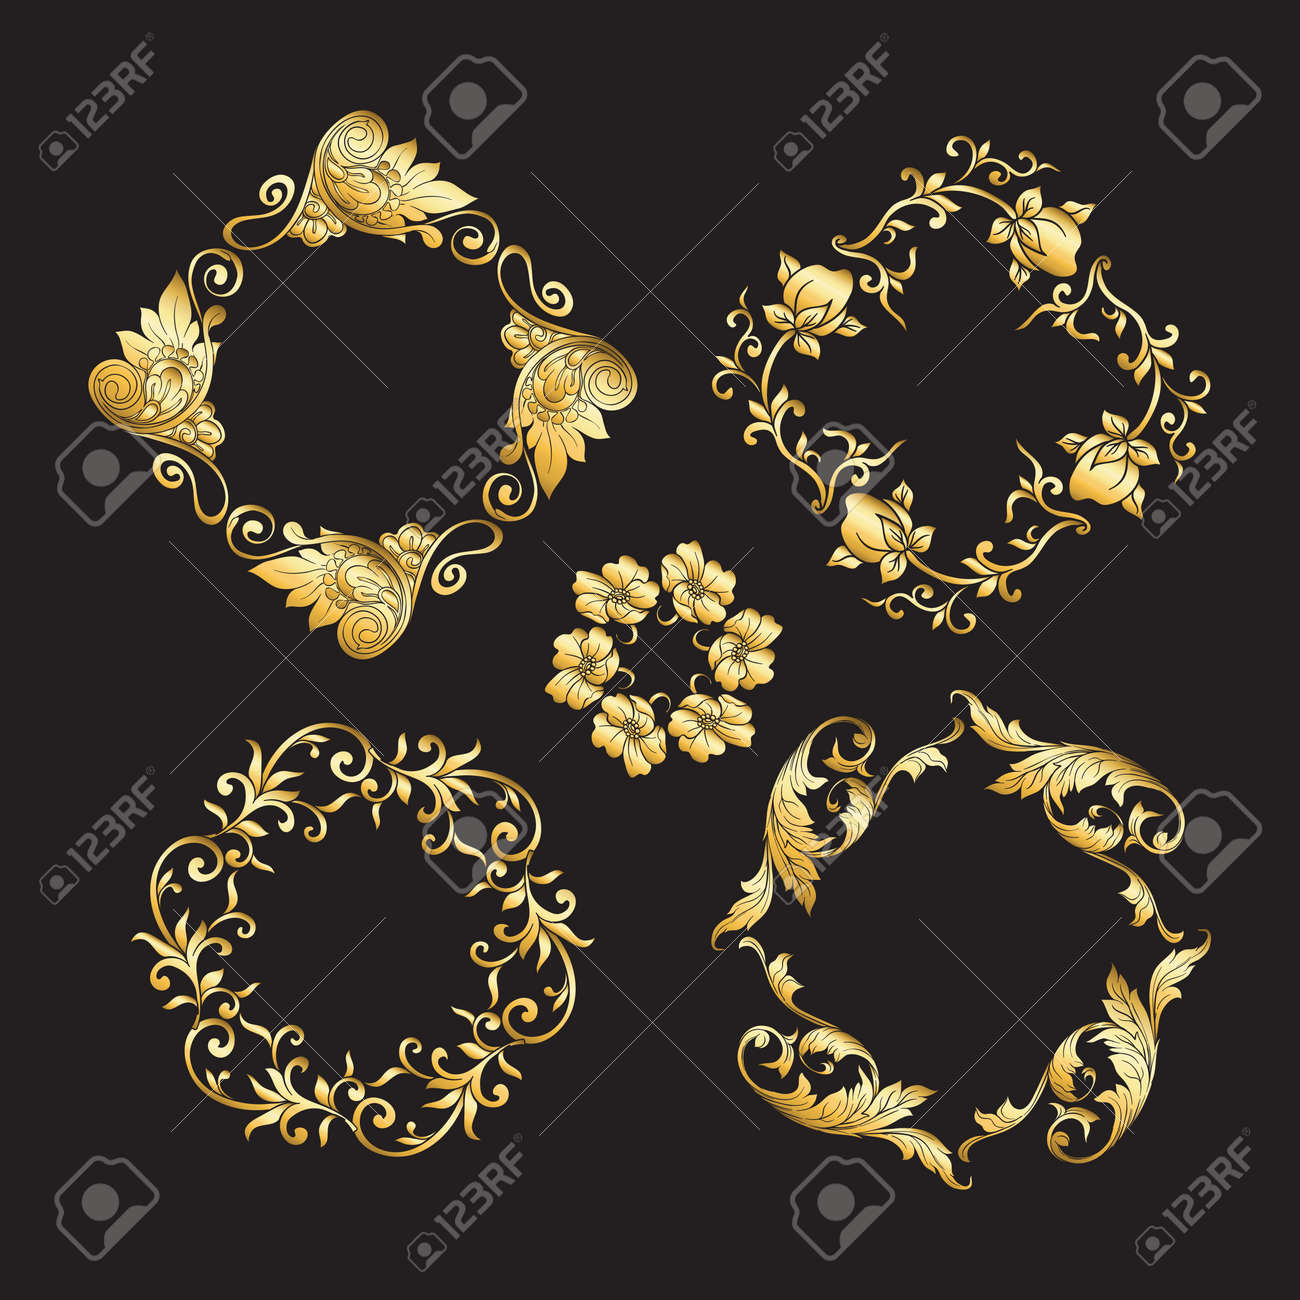 Chinese national ornament. Set of elements. In gold and blackVector illustration in gold colors. - 130790903